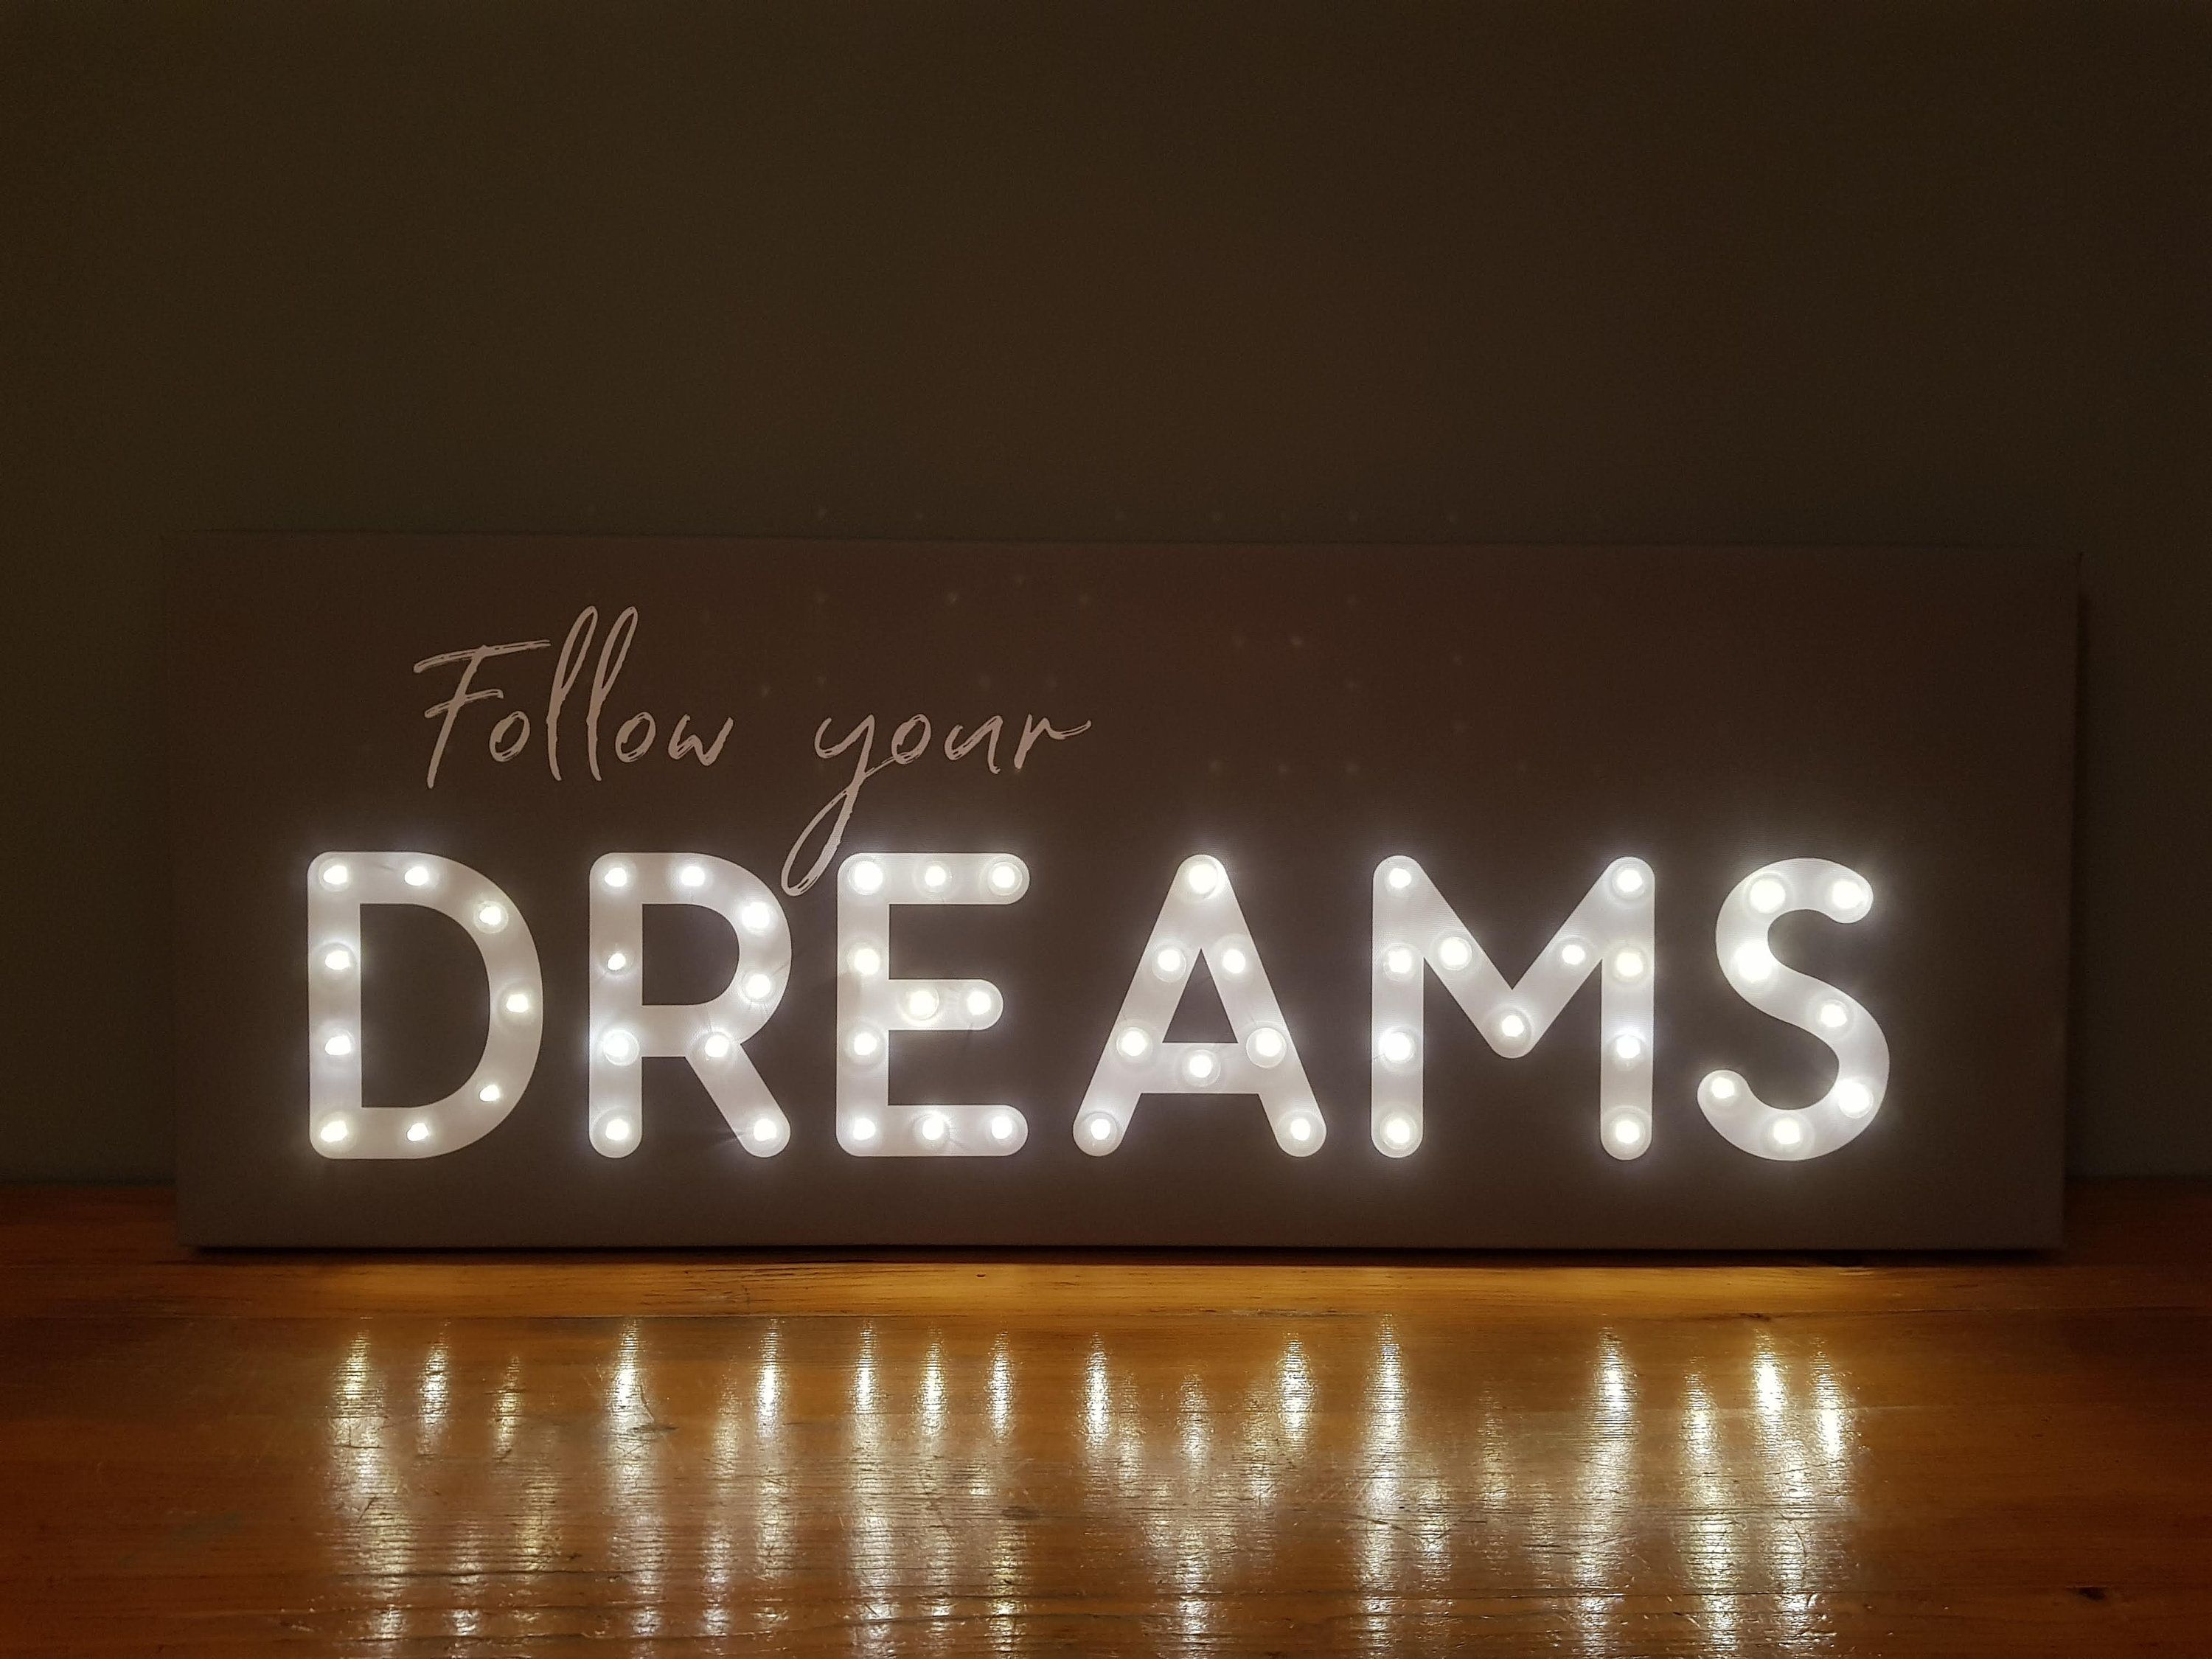 Follow Your Dreams Led Sign Follow Your Dreams Light Up Sign Motivational Wall Decor Inspirational Wall Art Light In 2020 Light Up Signs Led Signs Light Up Letters